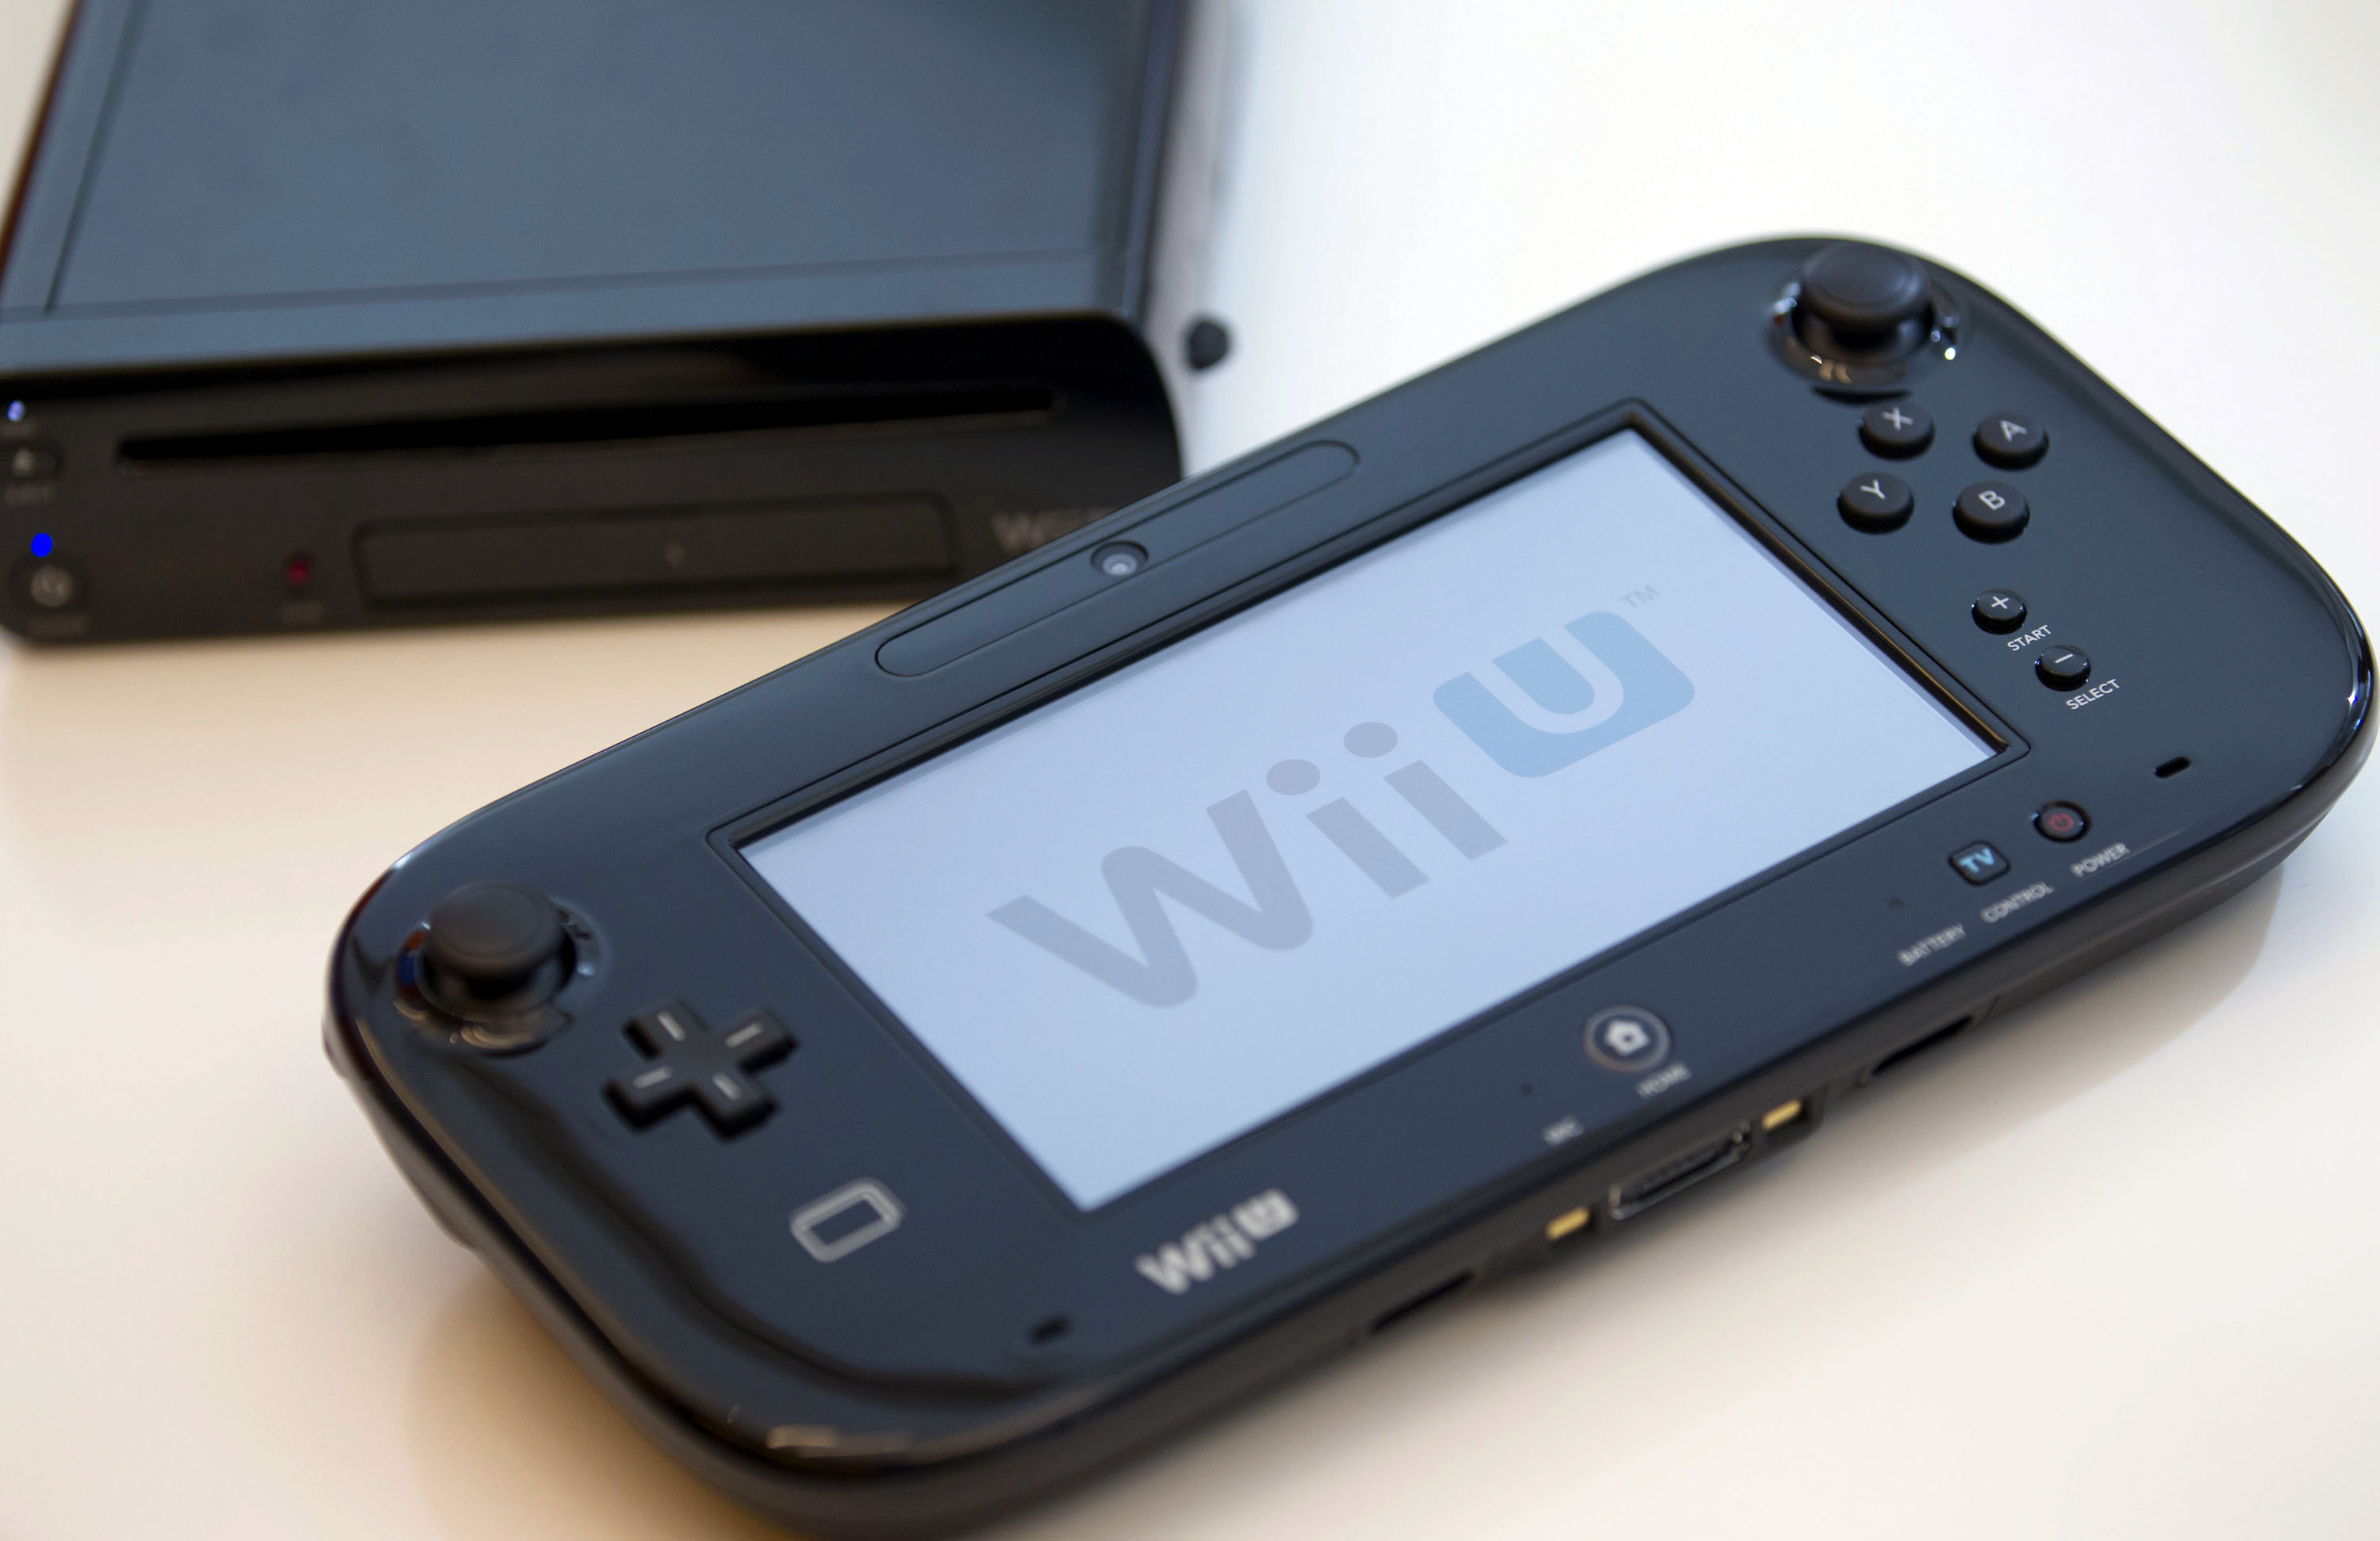 Nintendo's Wii U console, above, and touch-pad controller sit on display during an interview with Reggie Fils-Aime, president of Nintendo of America Inc., in New York, U.S., on Friday, Sept. 14, 2012.